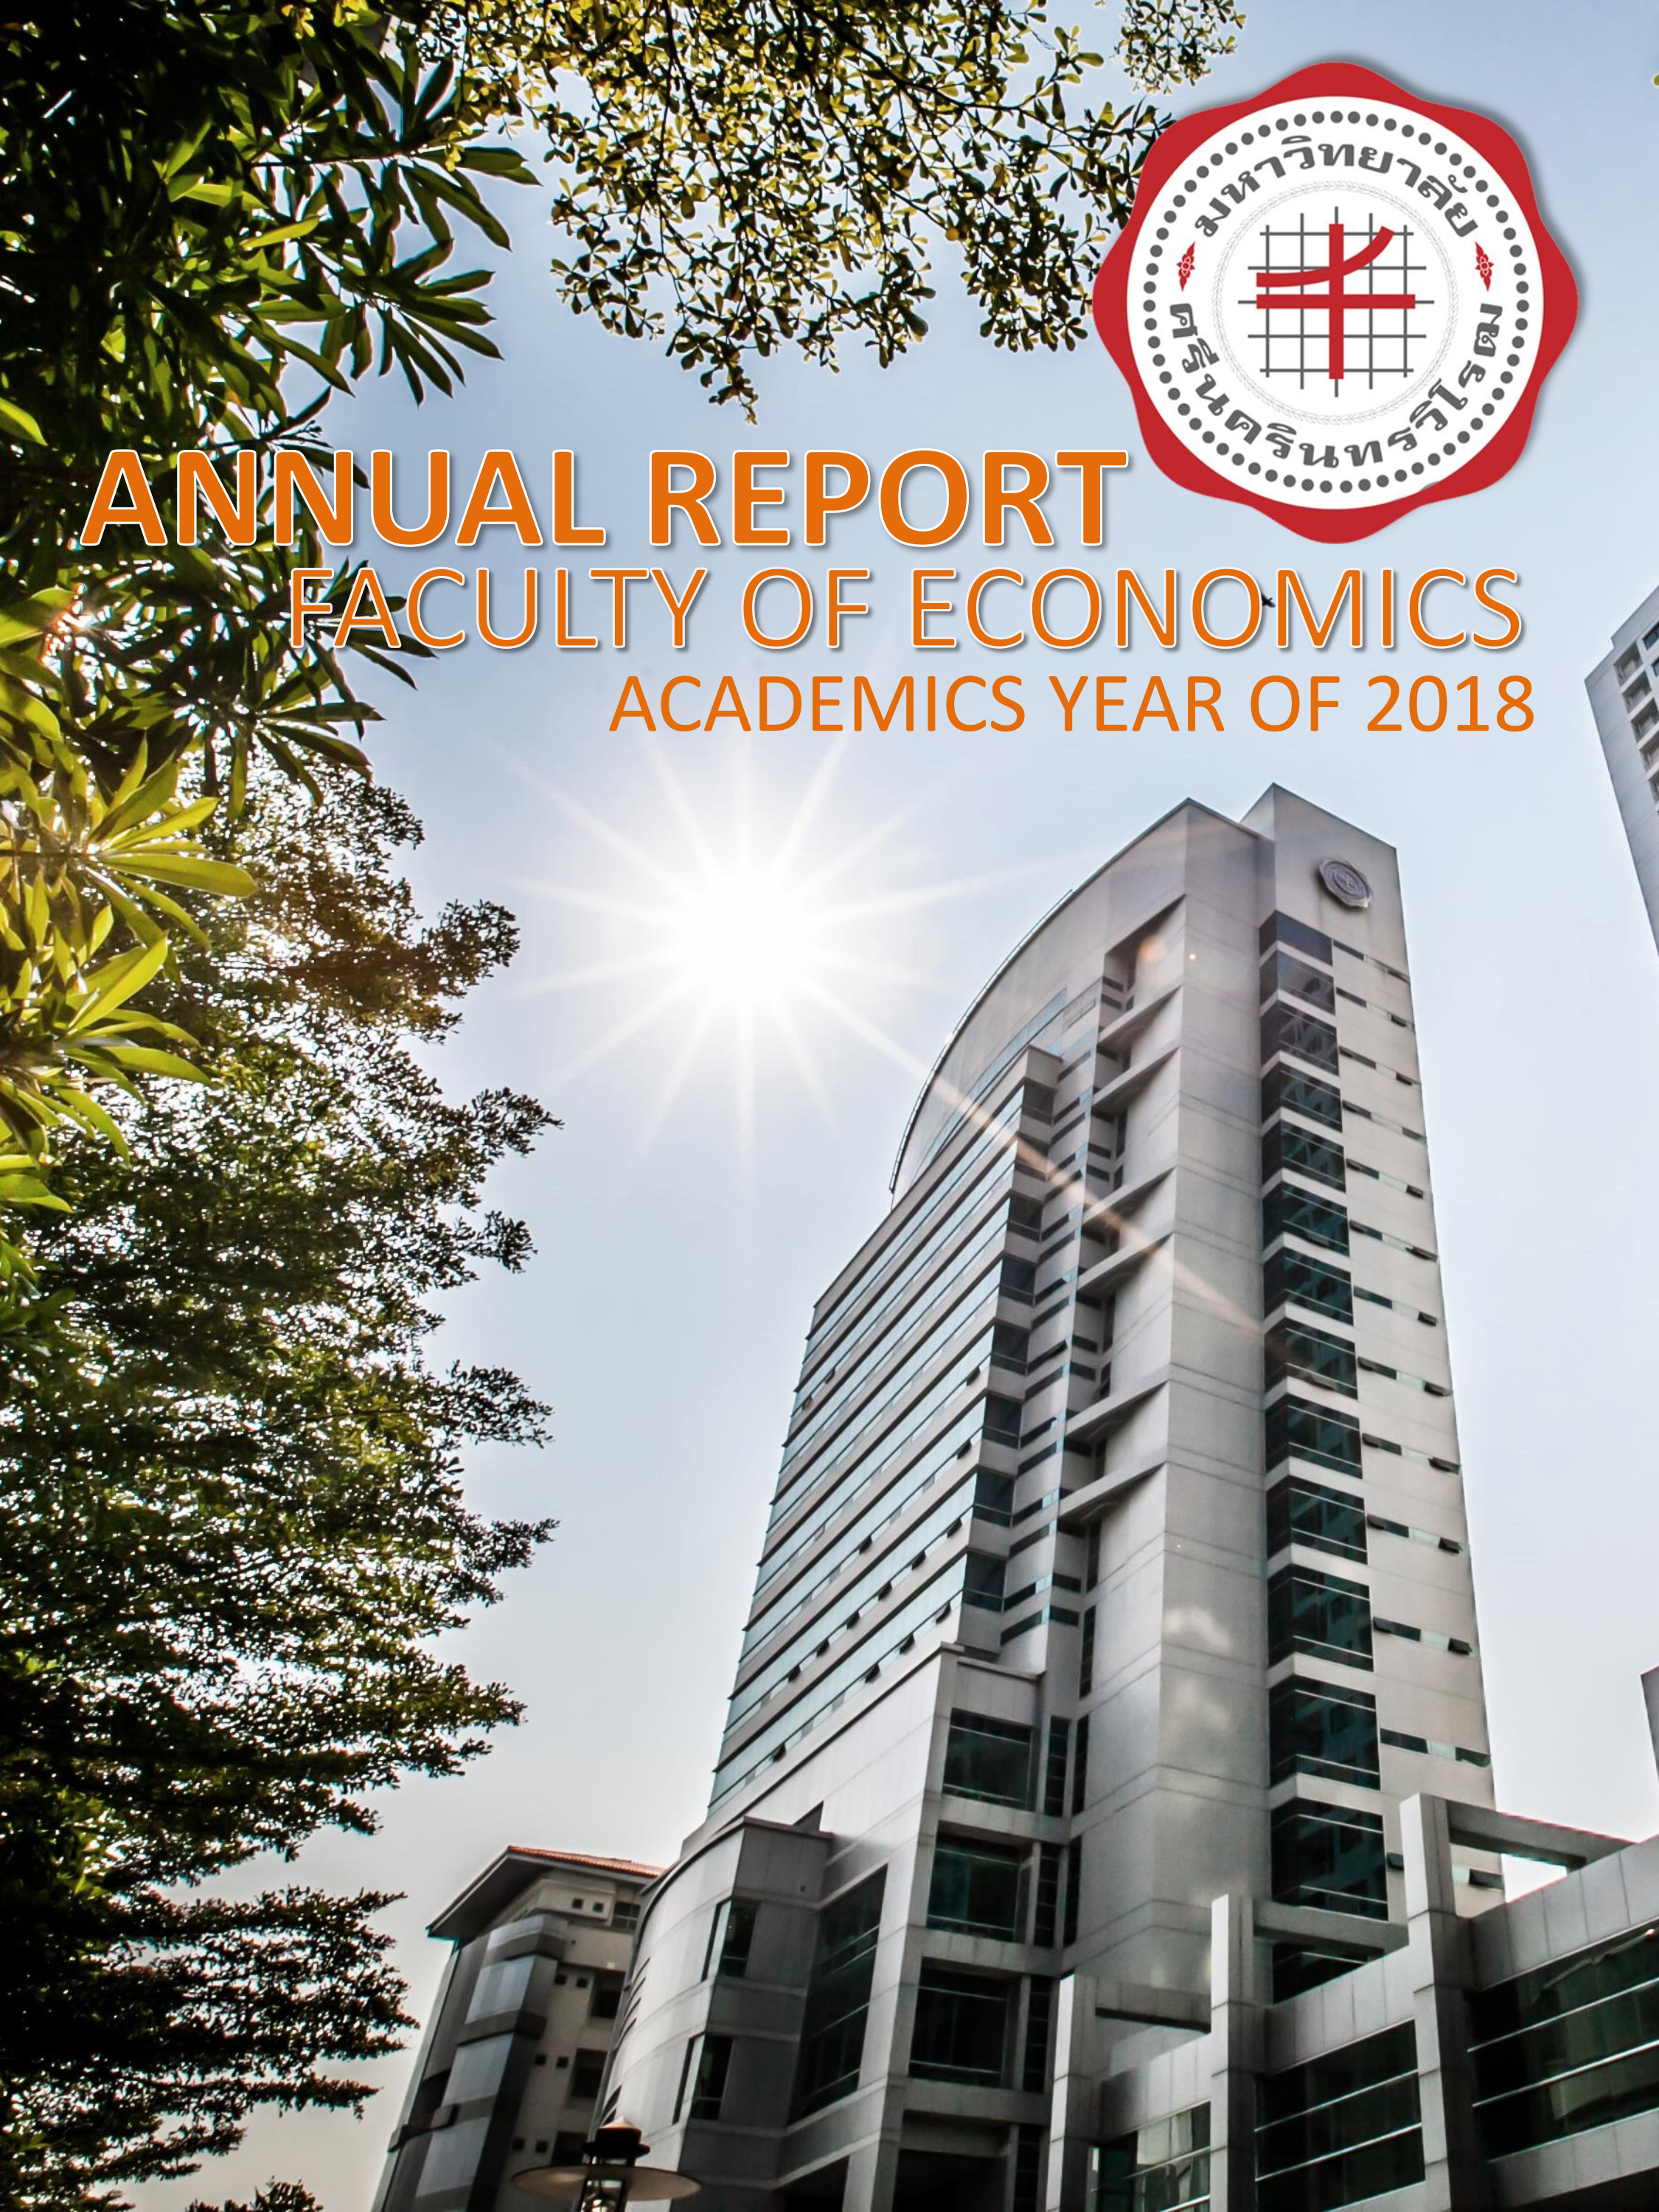 Annual Report Faculty of Economics Academics Year of 2018